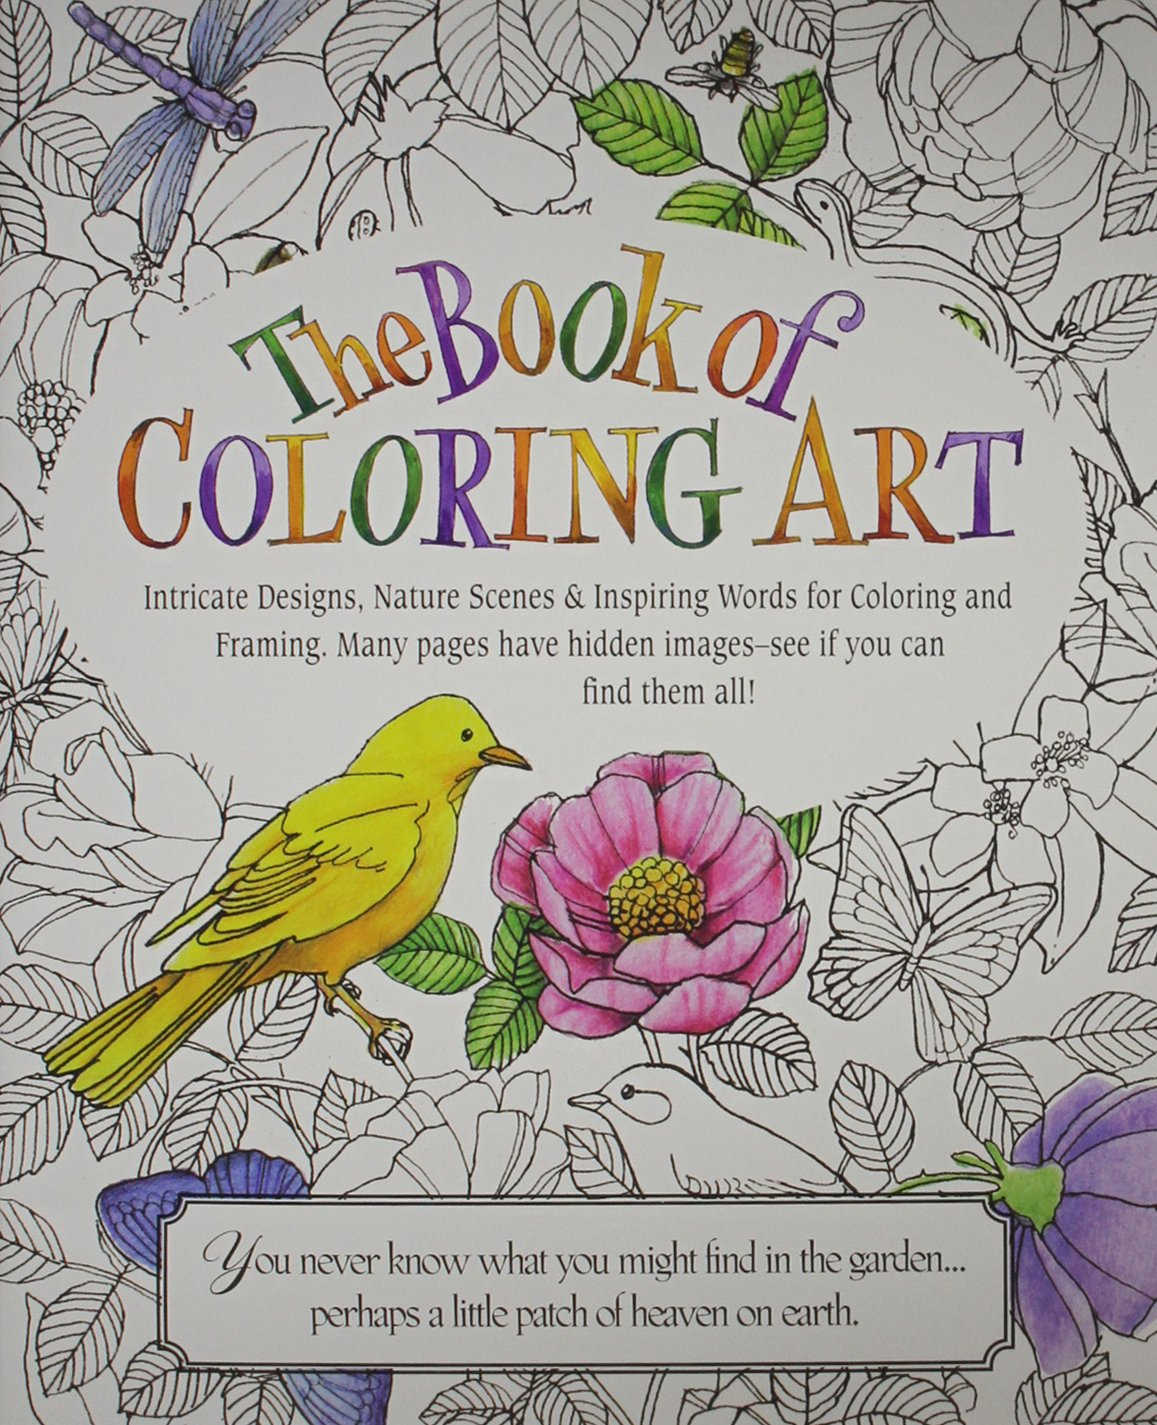 amazon com the book of coloring art 9780996386883 product